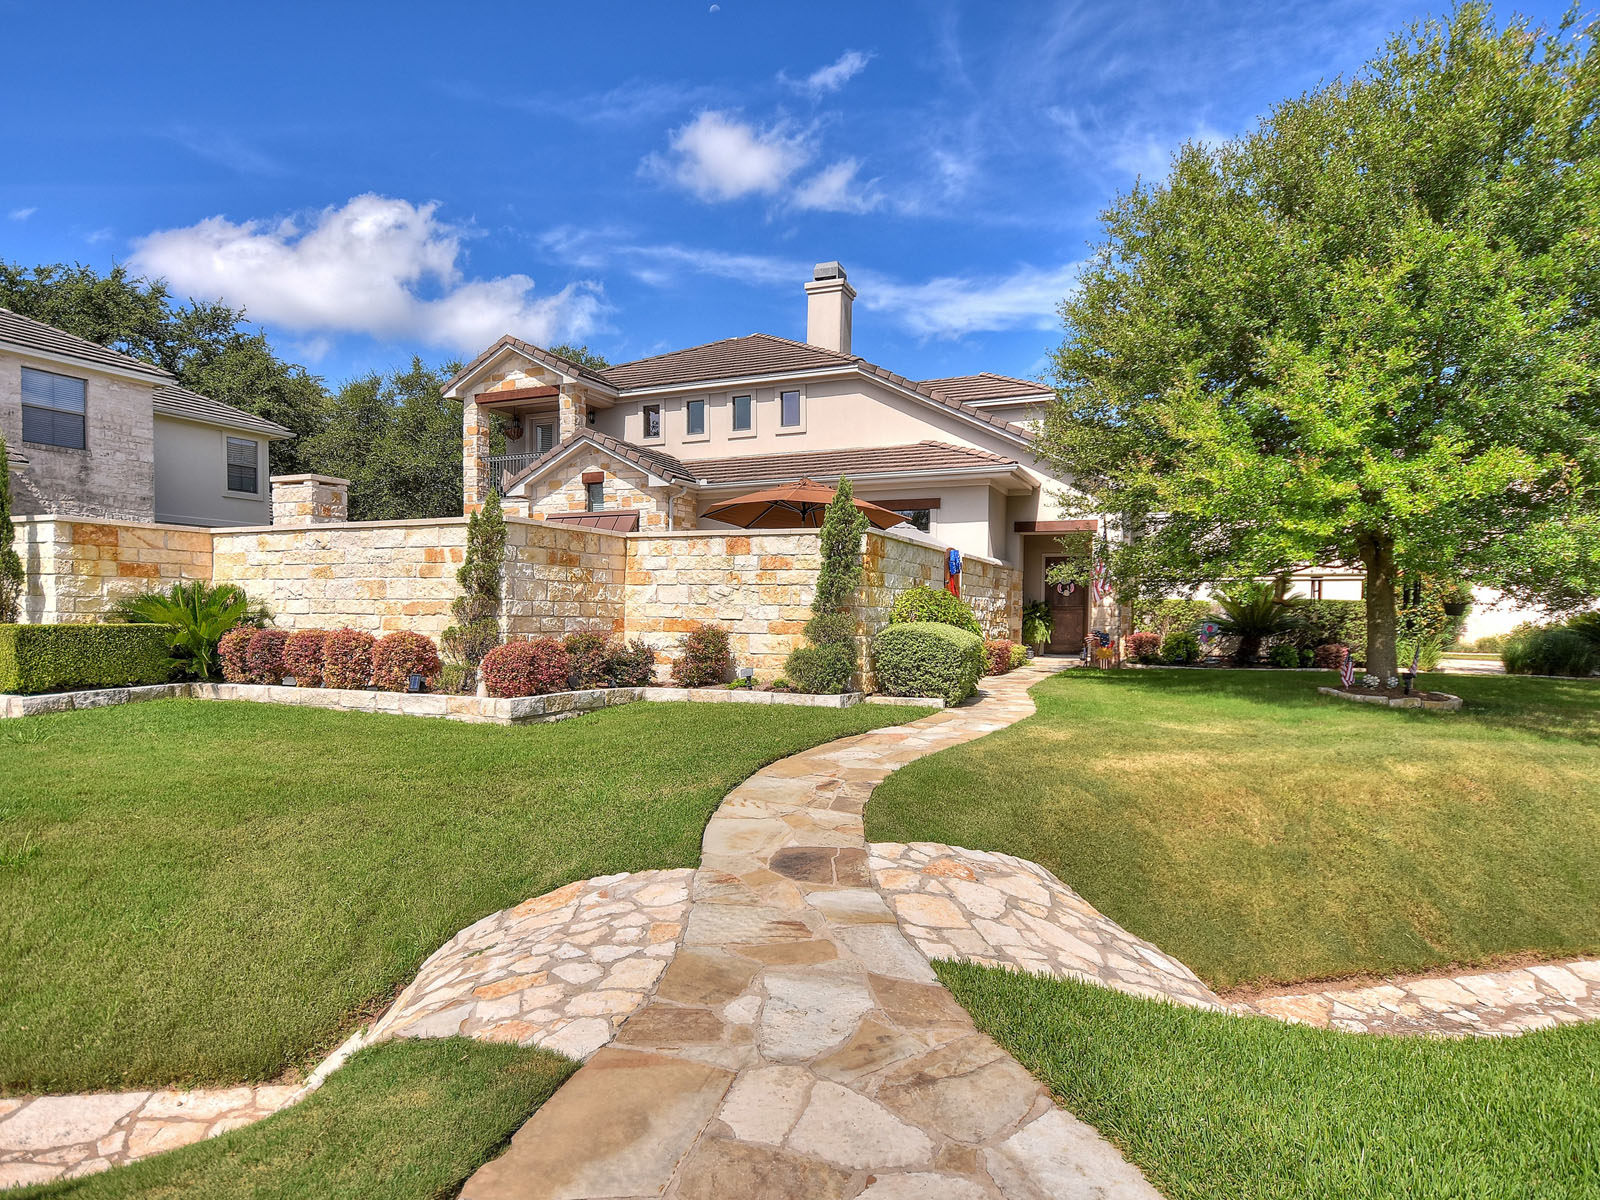 Single Family Home for Sale at Private Outdoor Oasis 6 Hightrail Way The Hills, Texas 78738 United States